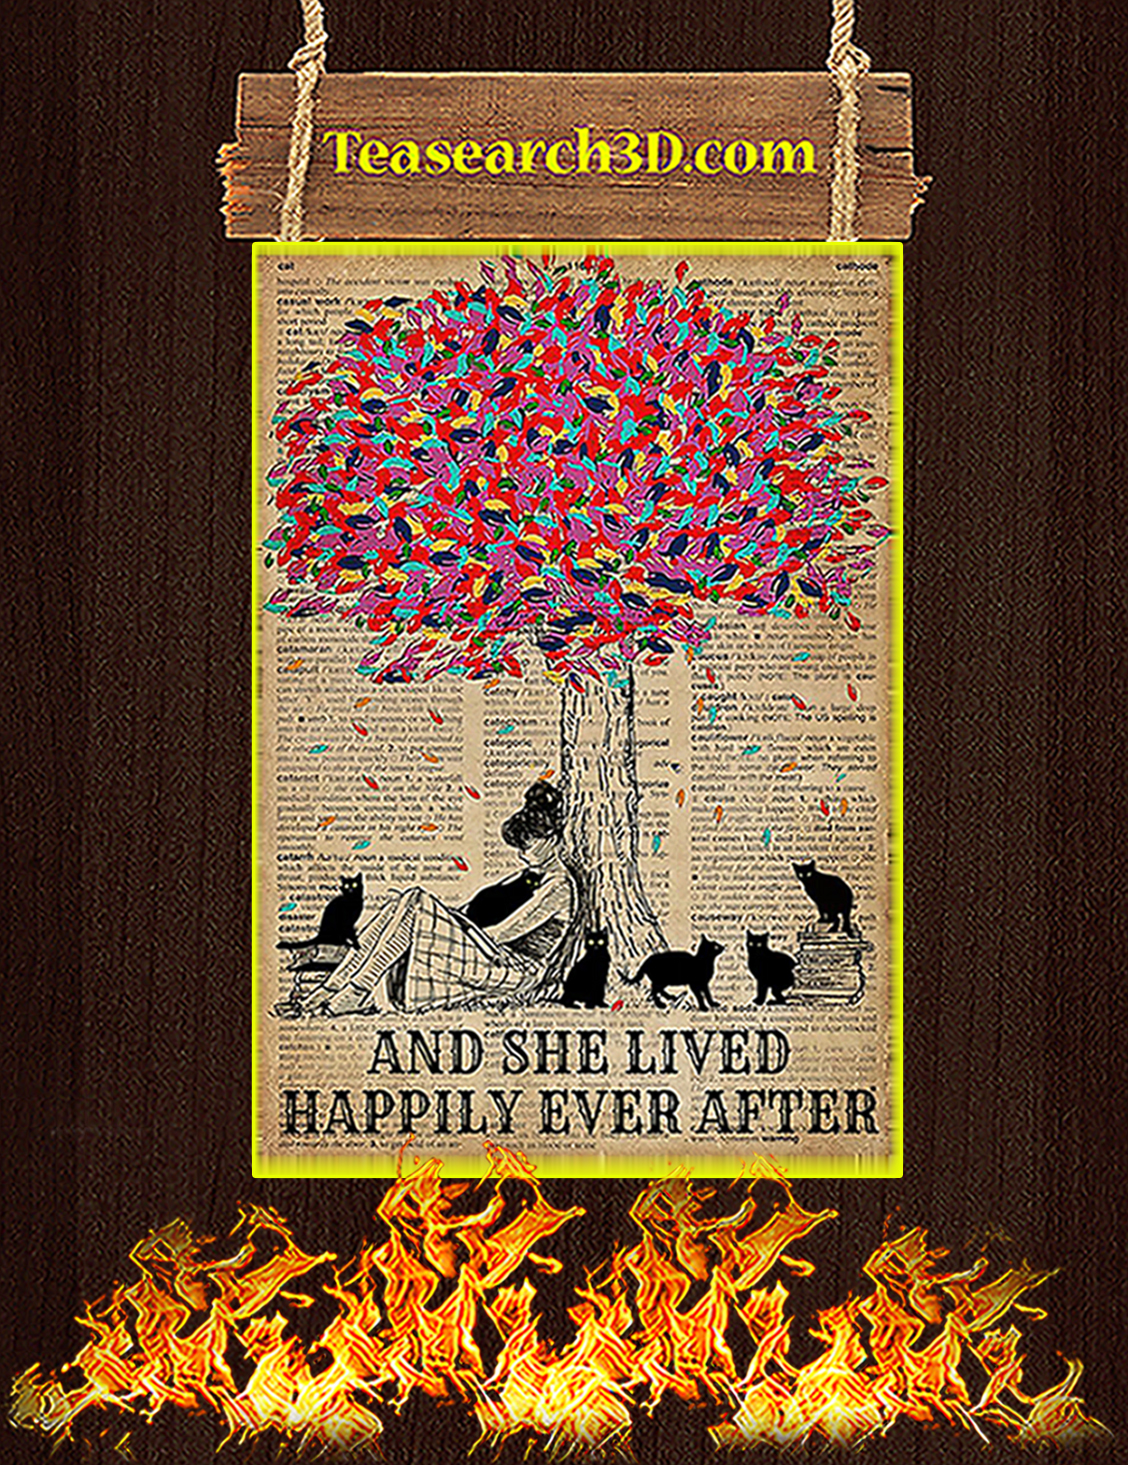 Trees Black cats And she lived happily ever after poster A3